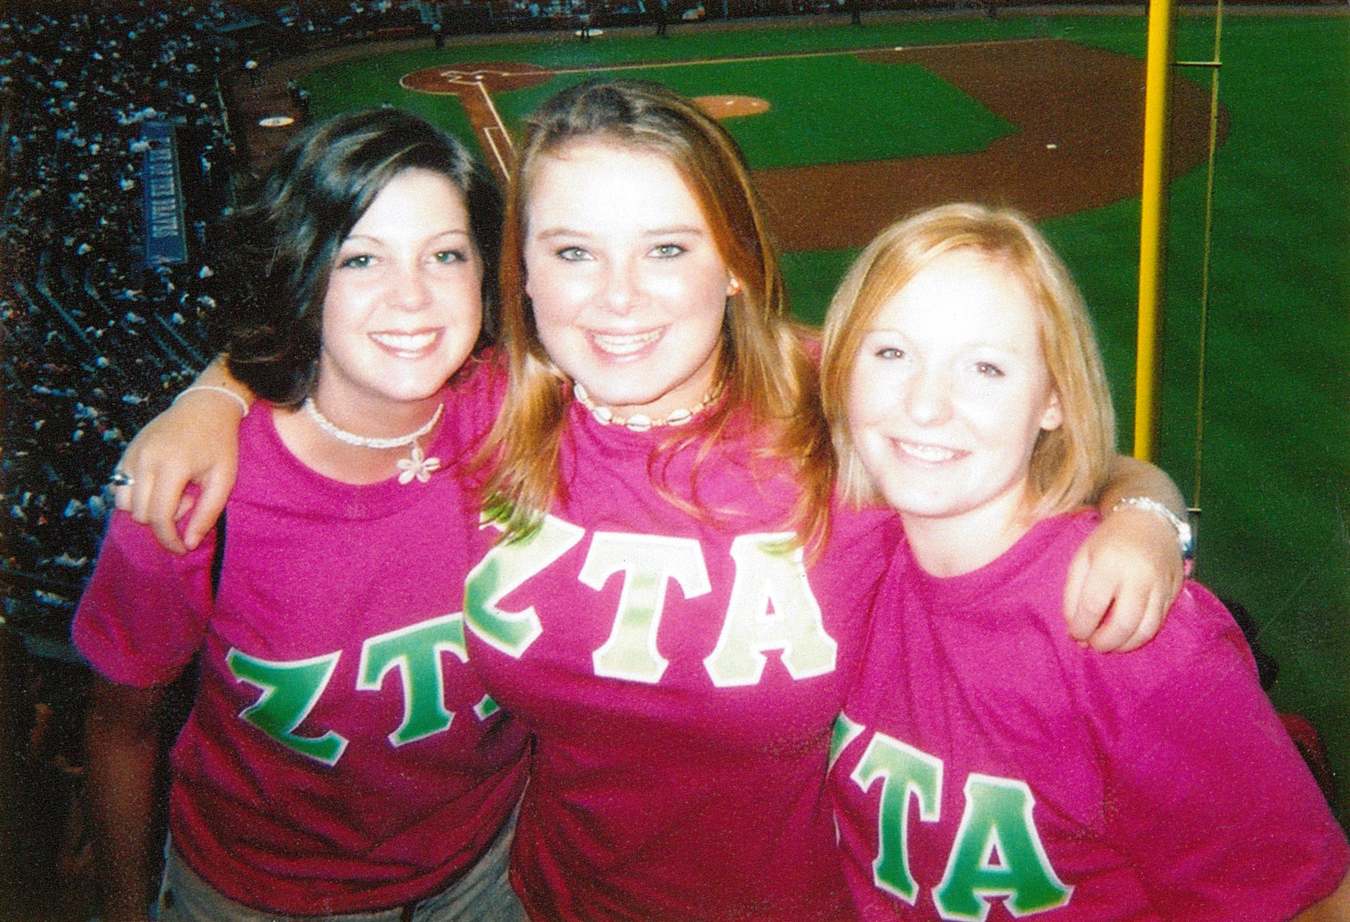 04-zeta-tau-alpha-sisterhood-retreat-braves-game-lindsey-archer